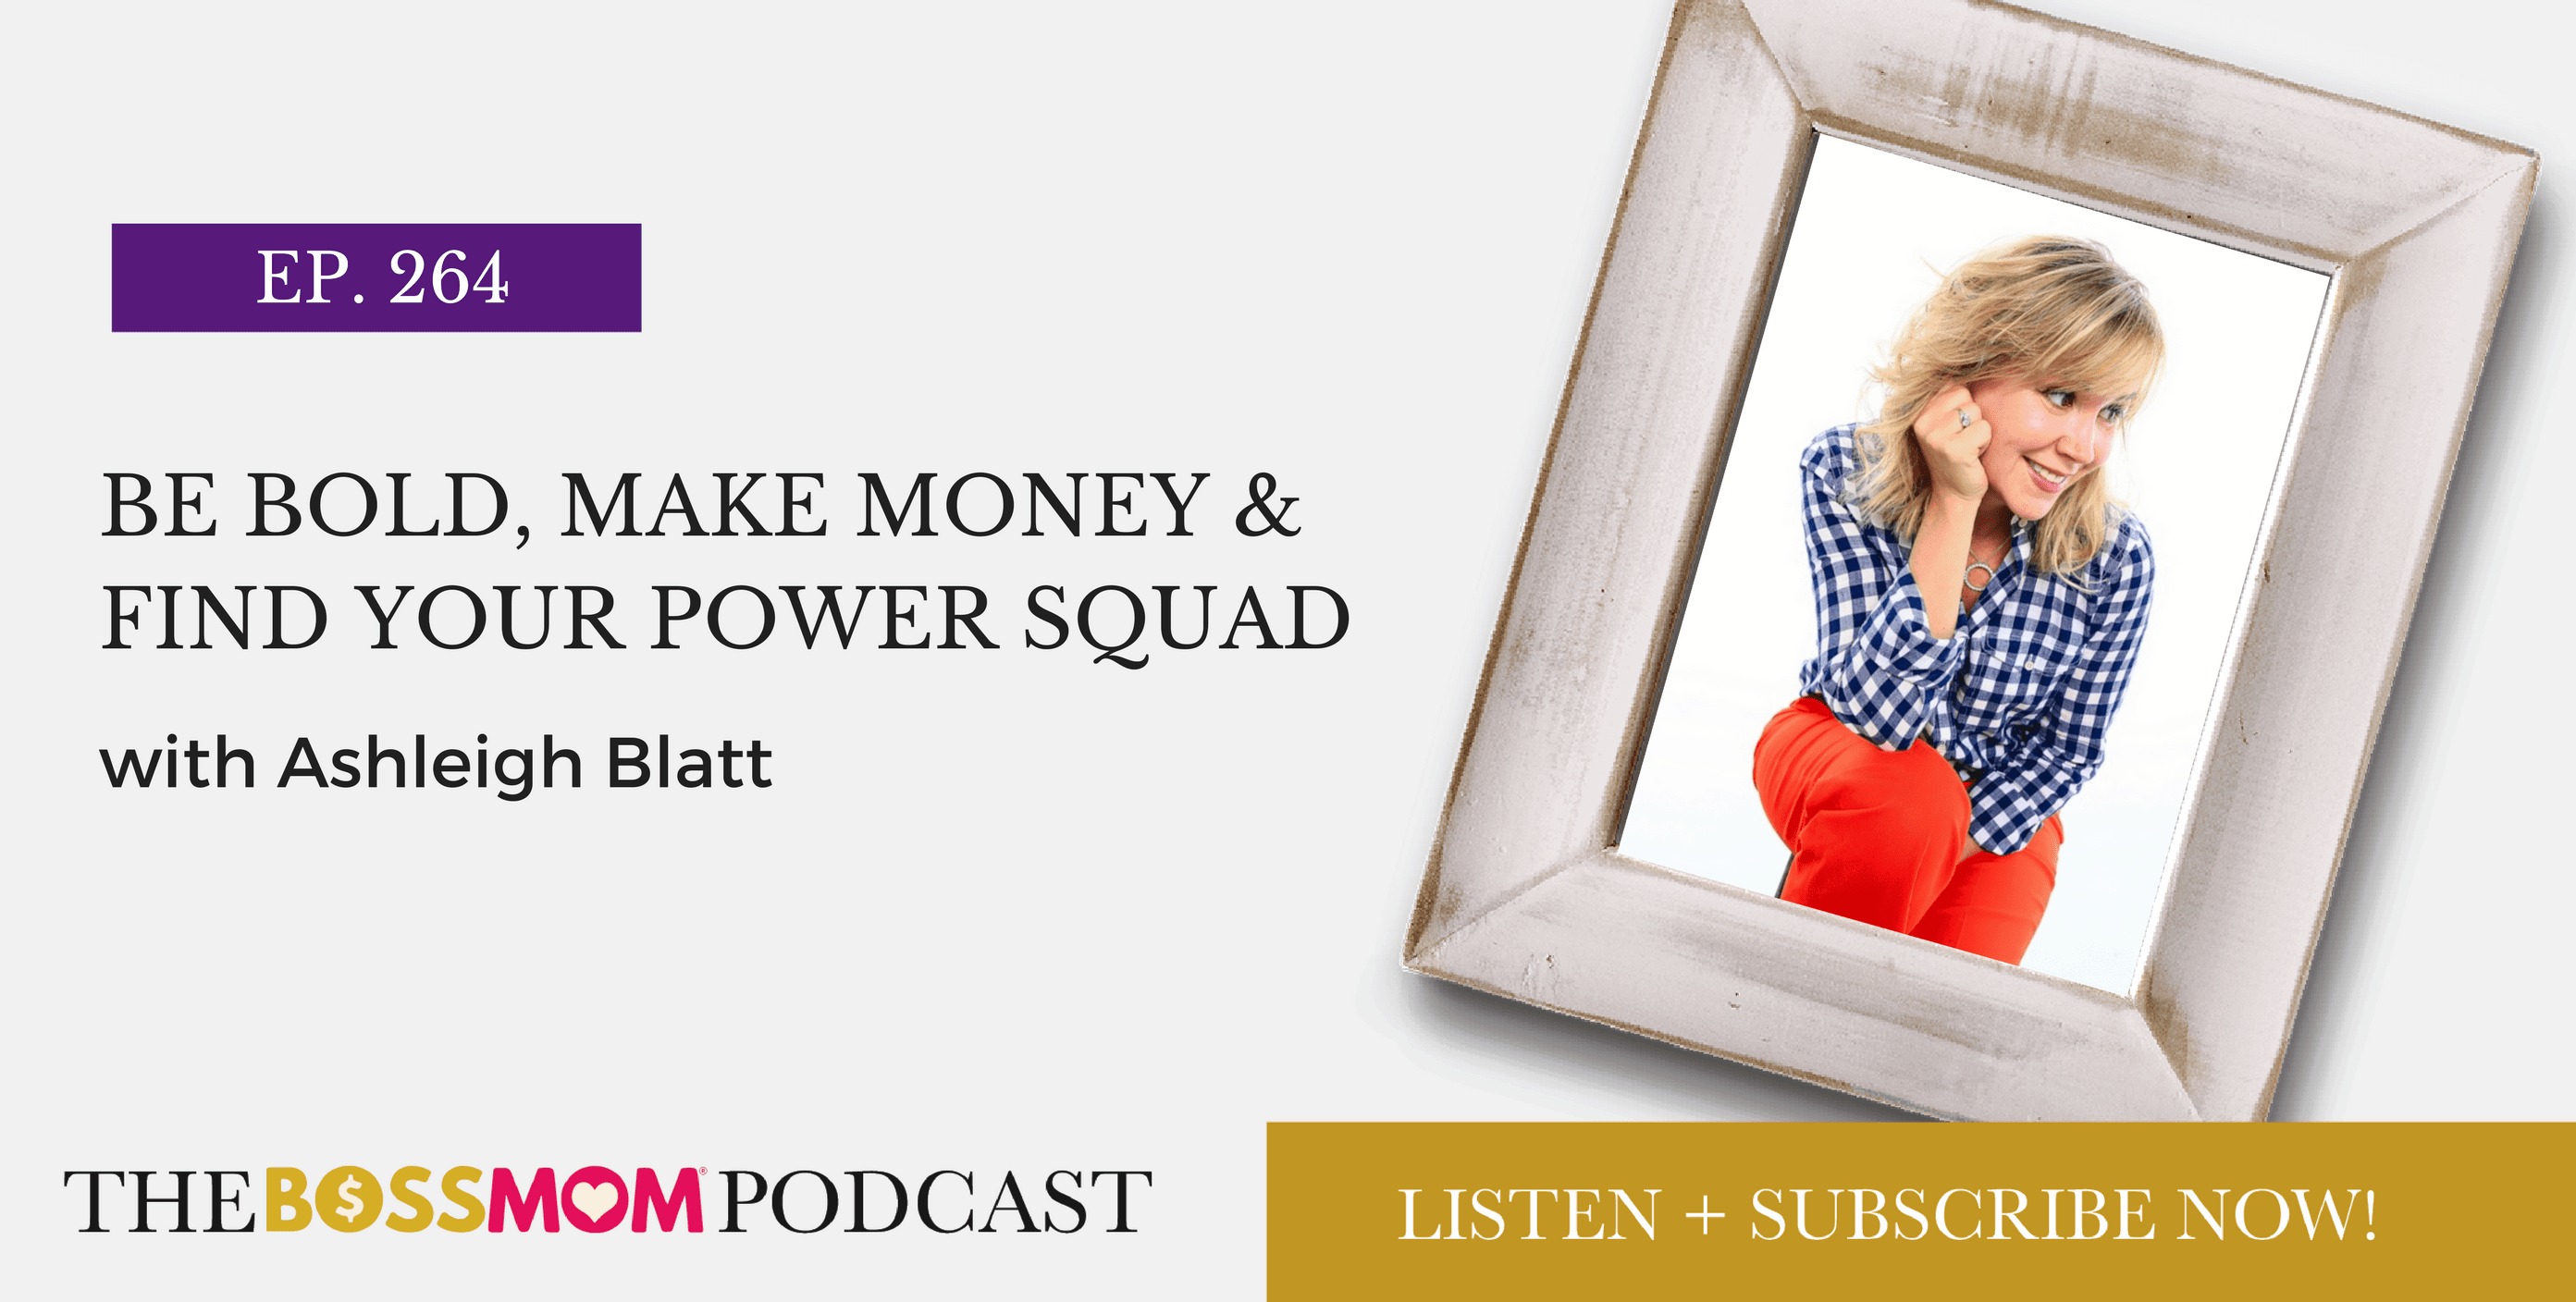 Episode 264: Be Bold, Make Money & Find Your Power Squad with Ashleigh Blatt